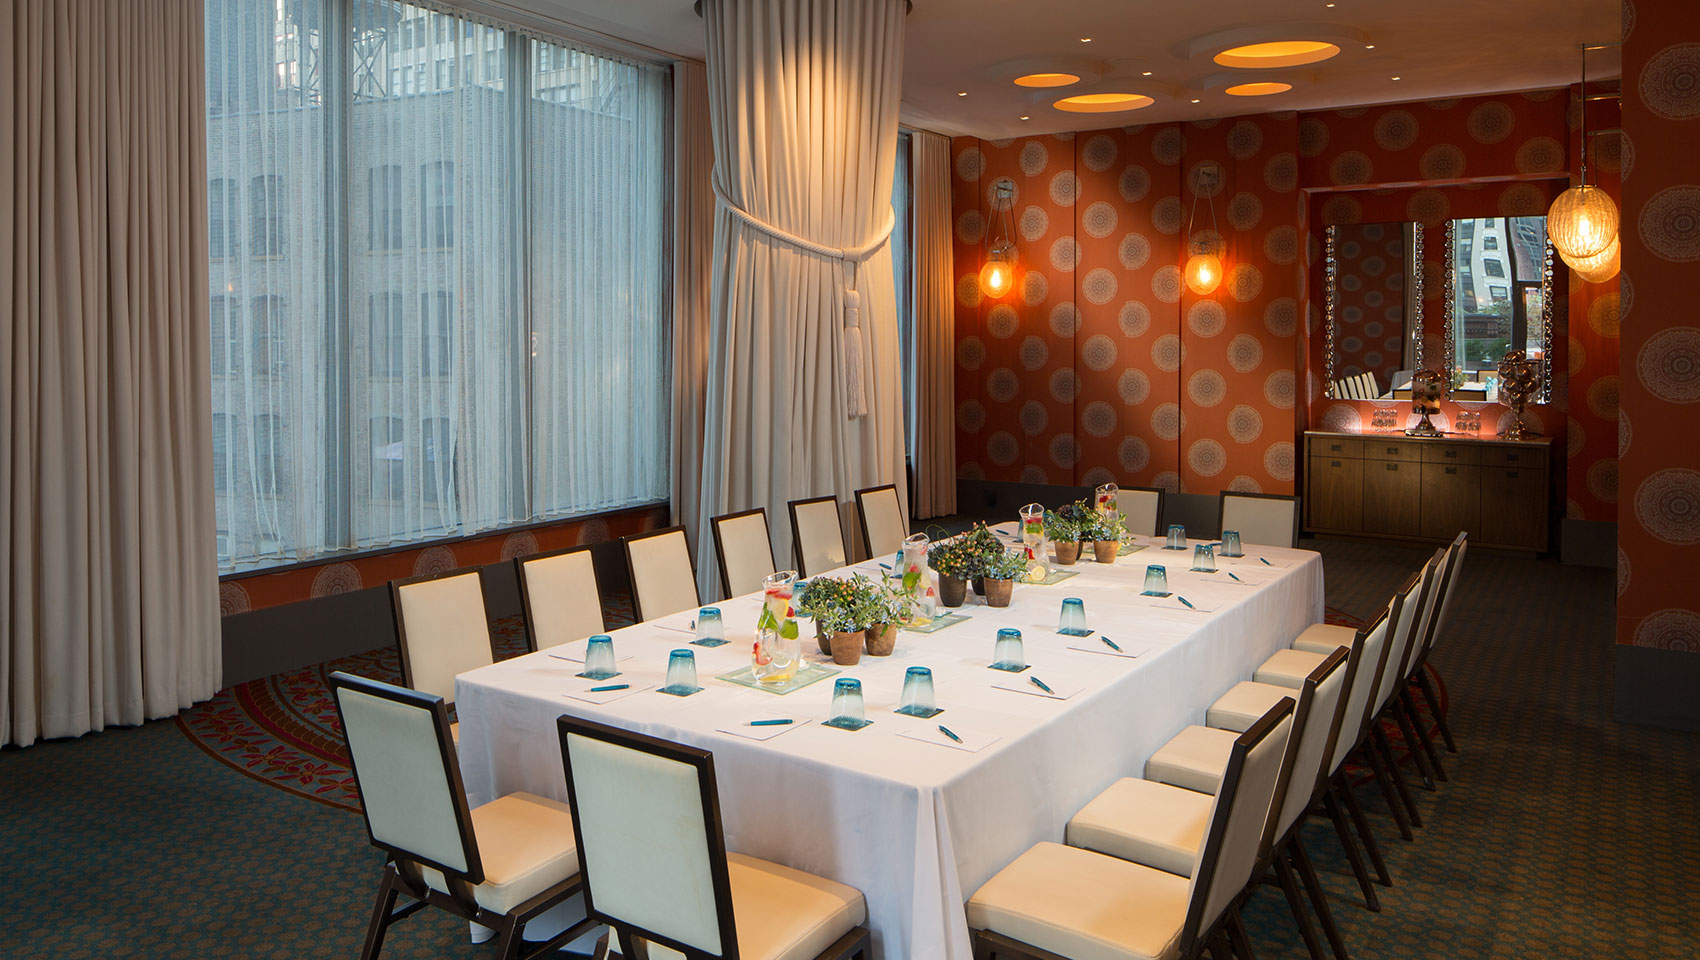 Verdi I boardroom meeting with drawn curtains and meeting table with notepads, floral pieces, and glasses on table